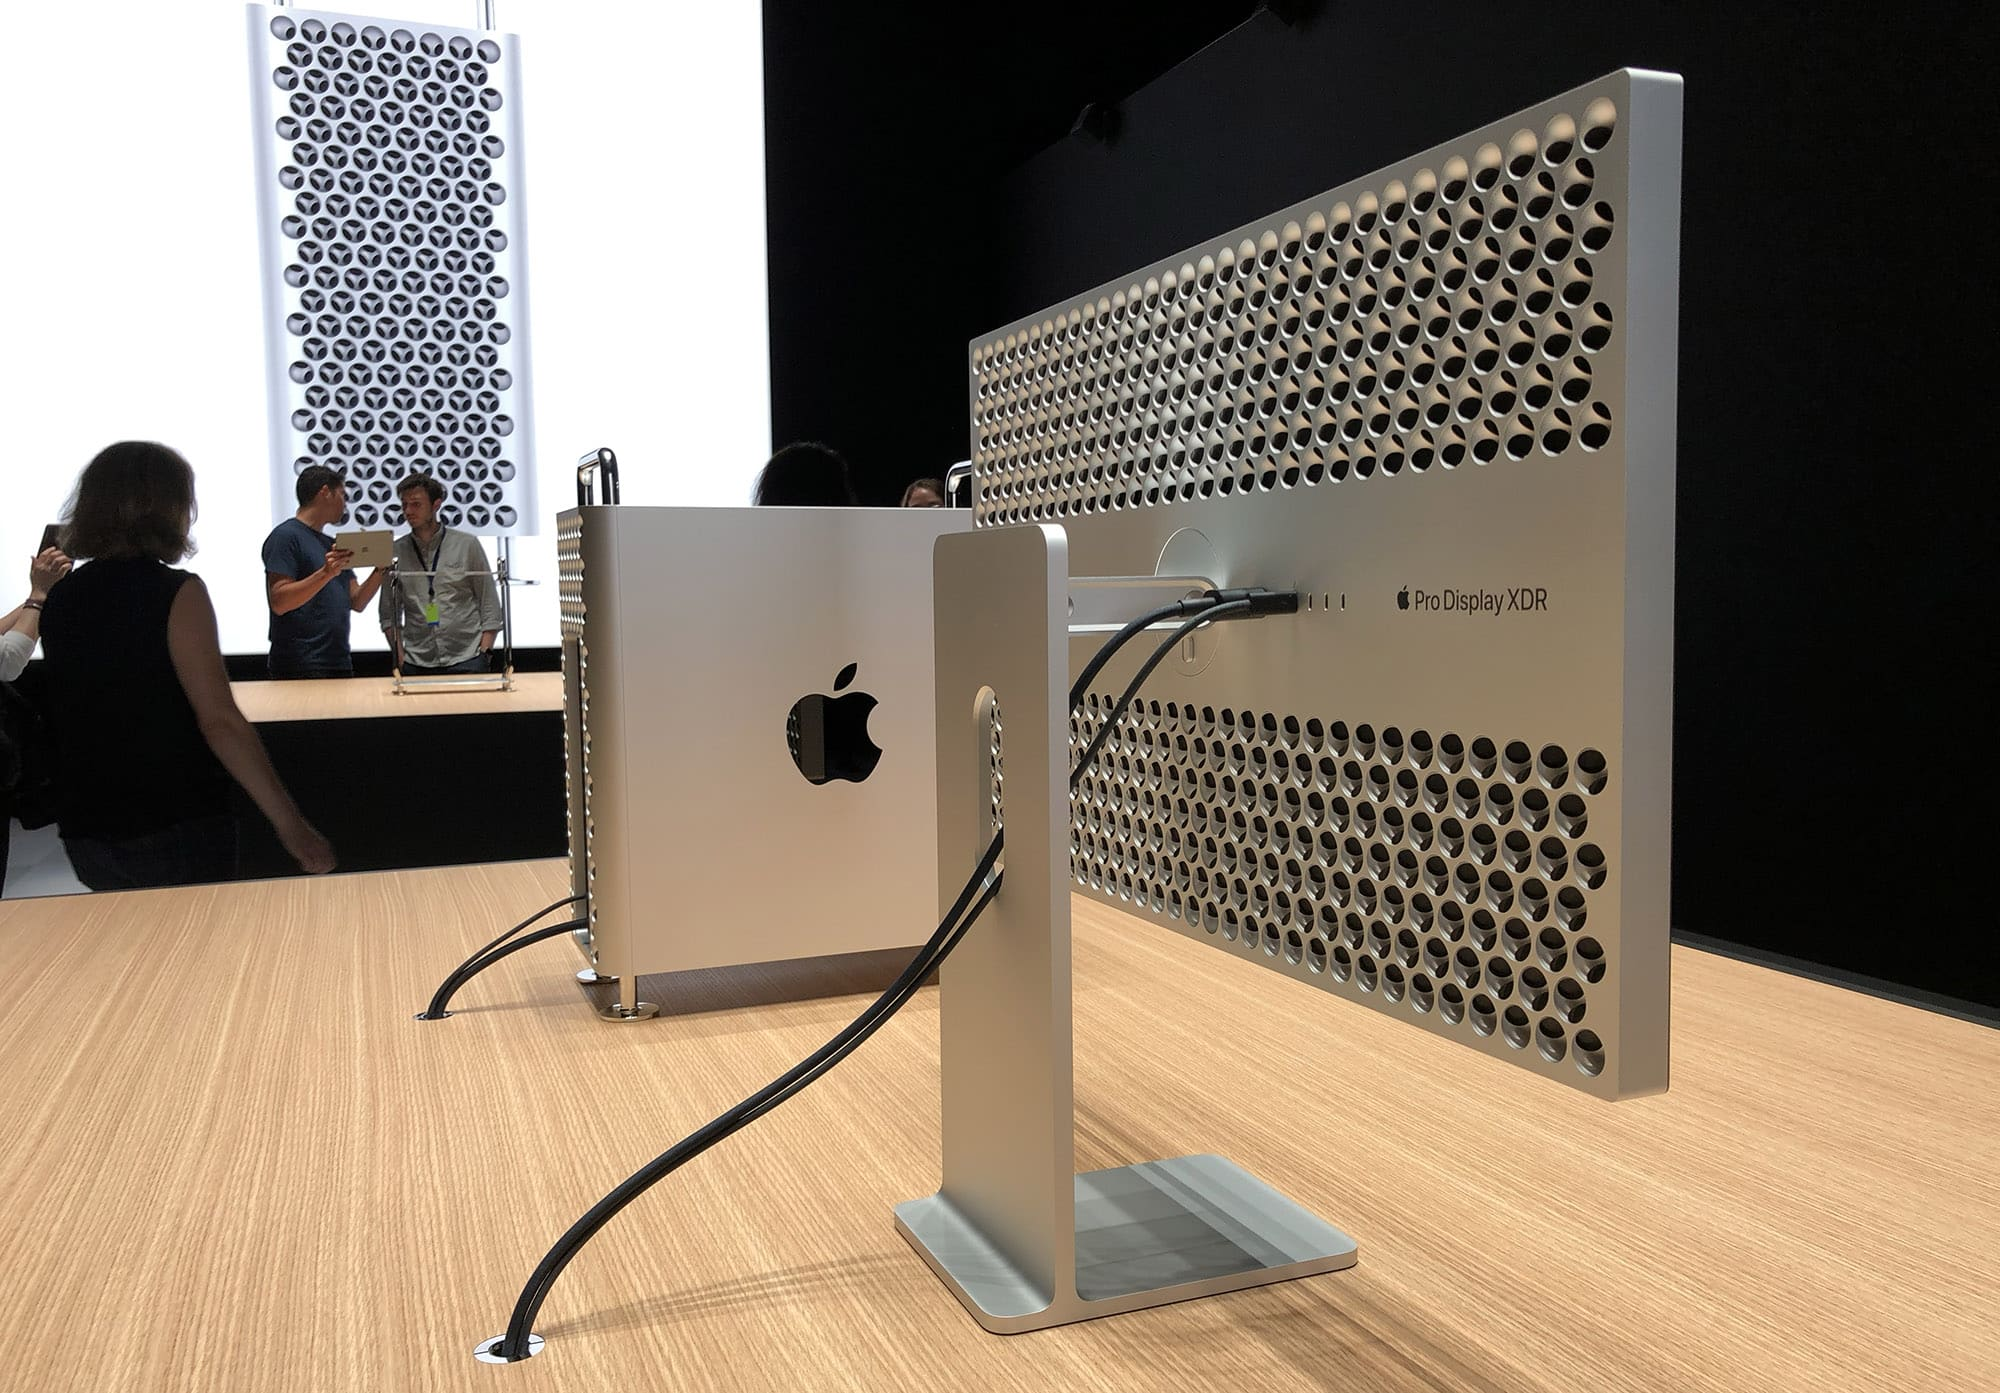 Behind Apple's Mac Pro: Editing, Grading and HDR – fxguide